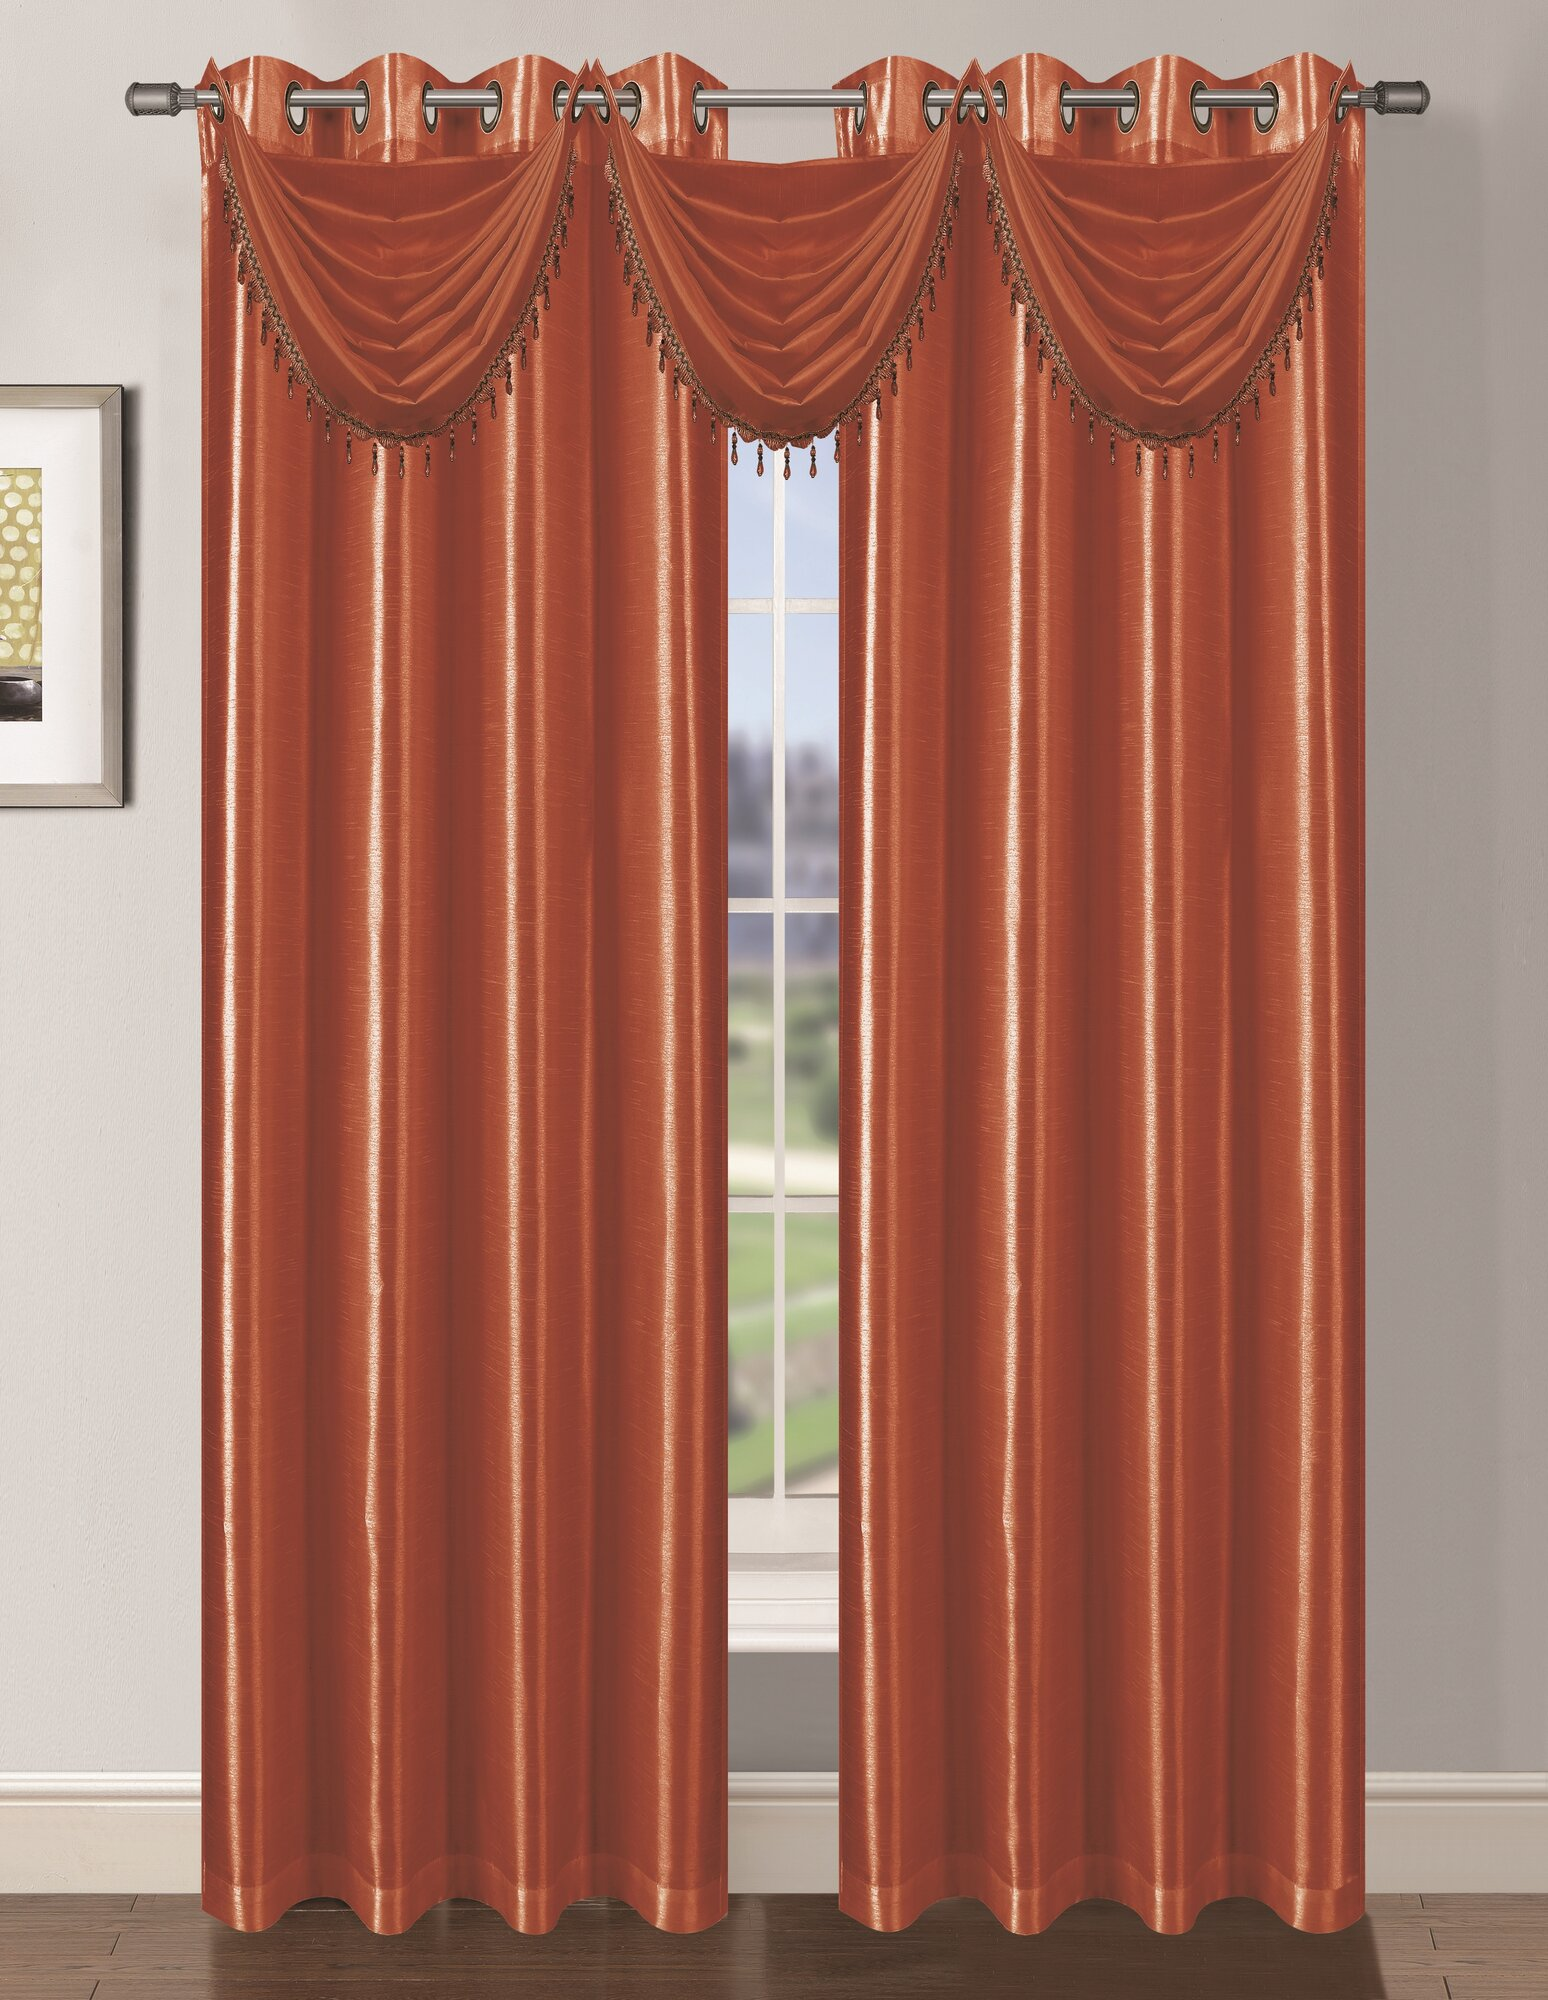 Curtain company